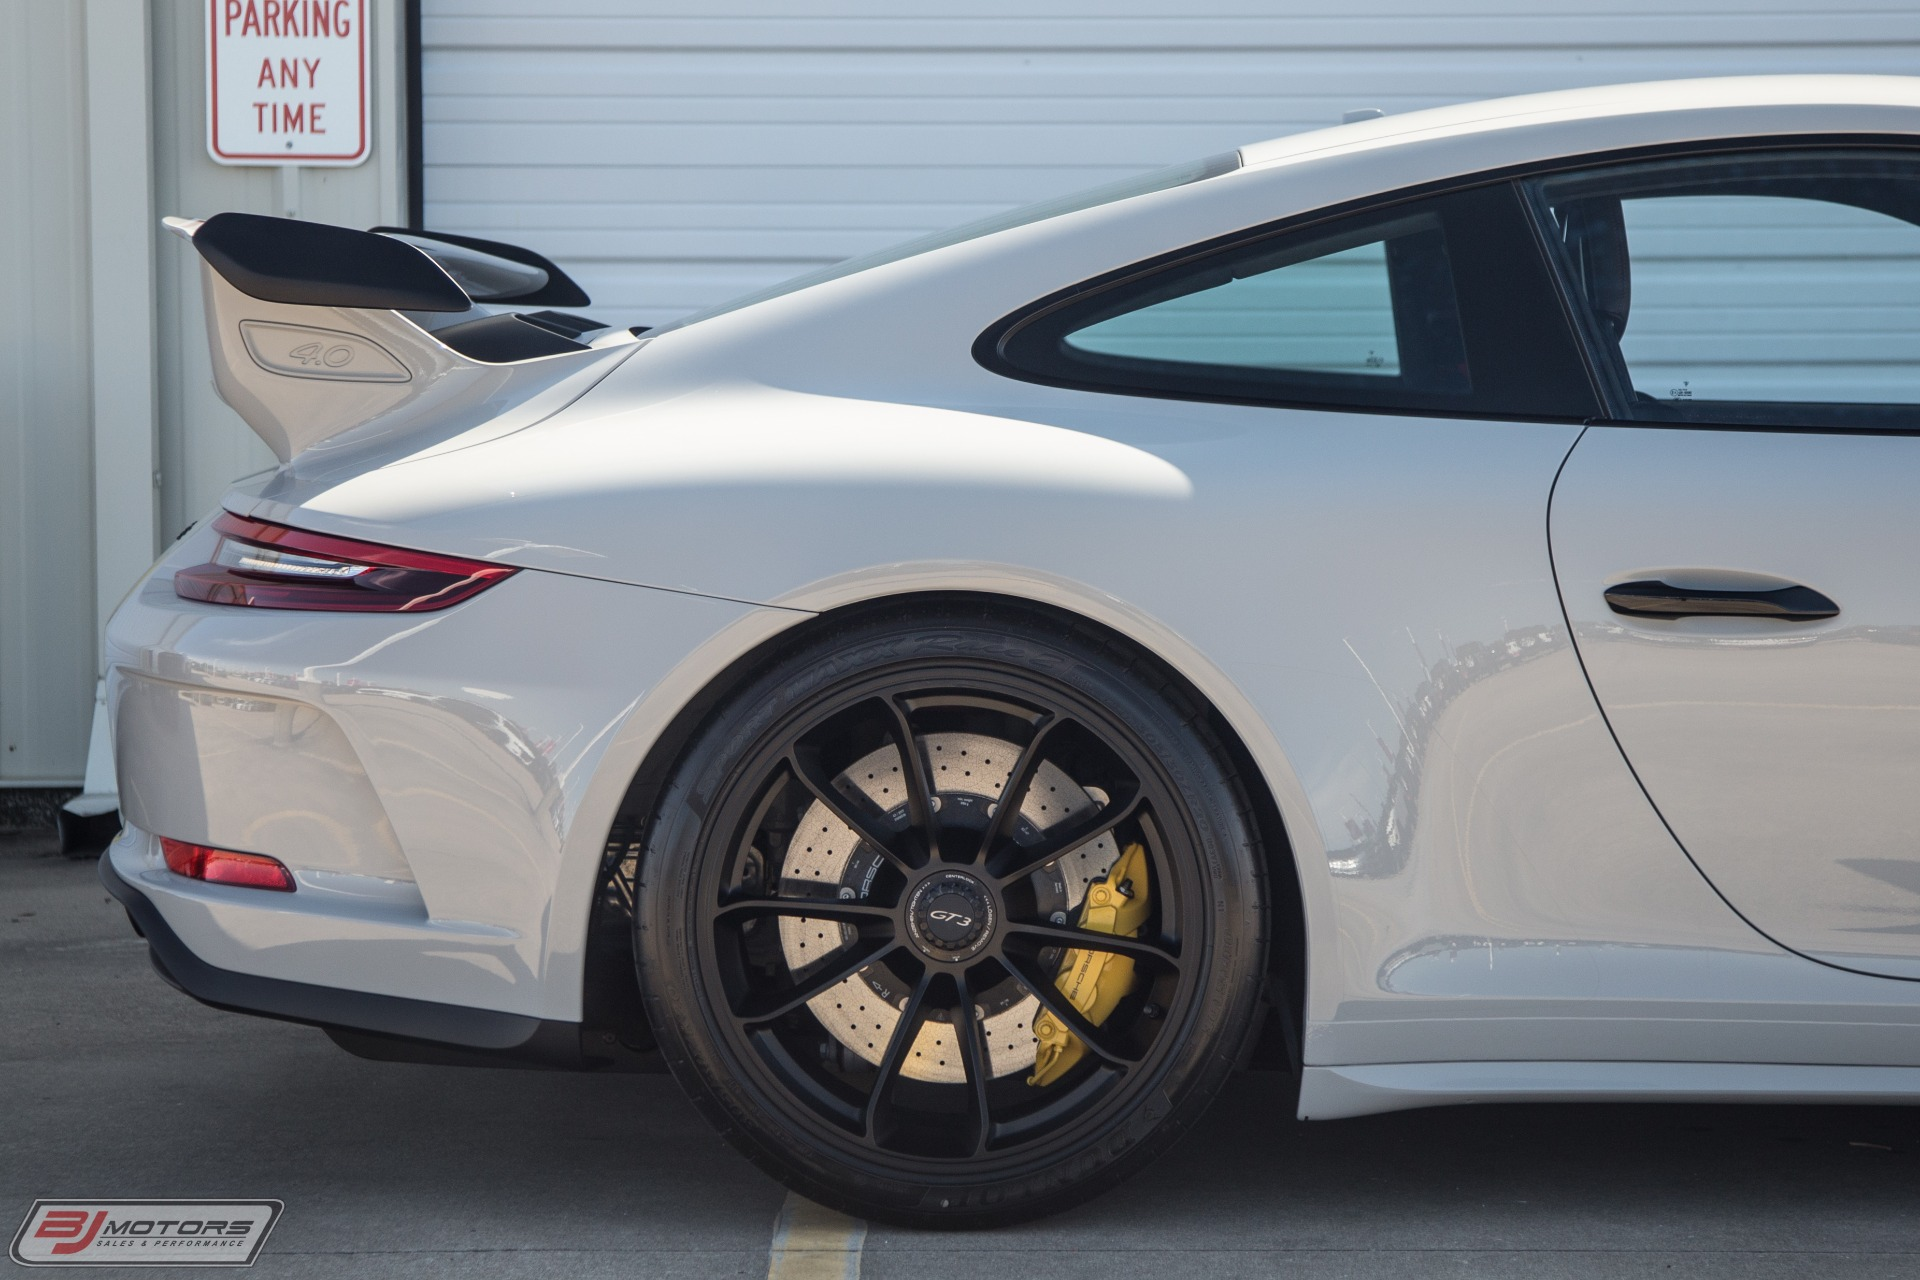 Used-2018-Porsche-911-GT3-Only-500-Miles-from-New